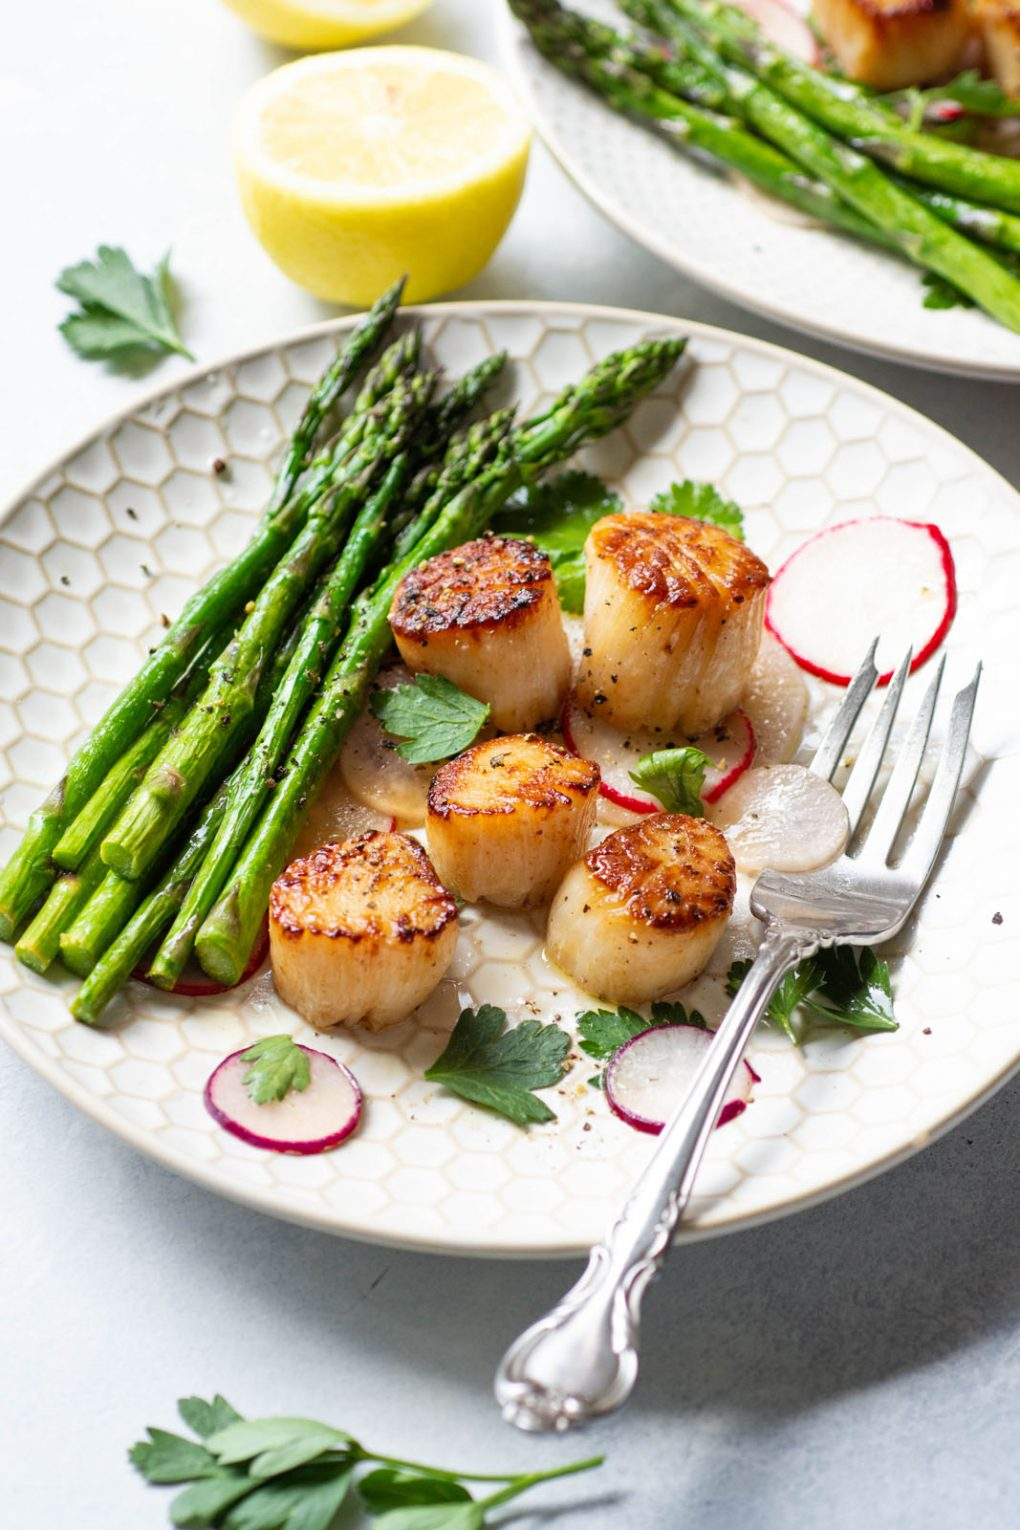 Side angle view of a white plate with seared scallops over a thinly sliced radish salad, next to a bundle of bright green asparagus. On a light background surrounded by a cut lemon and a scatter of fresh herbs.